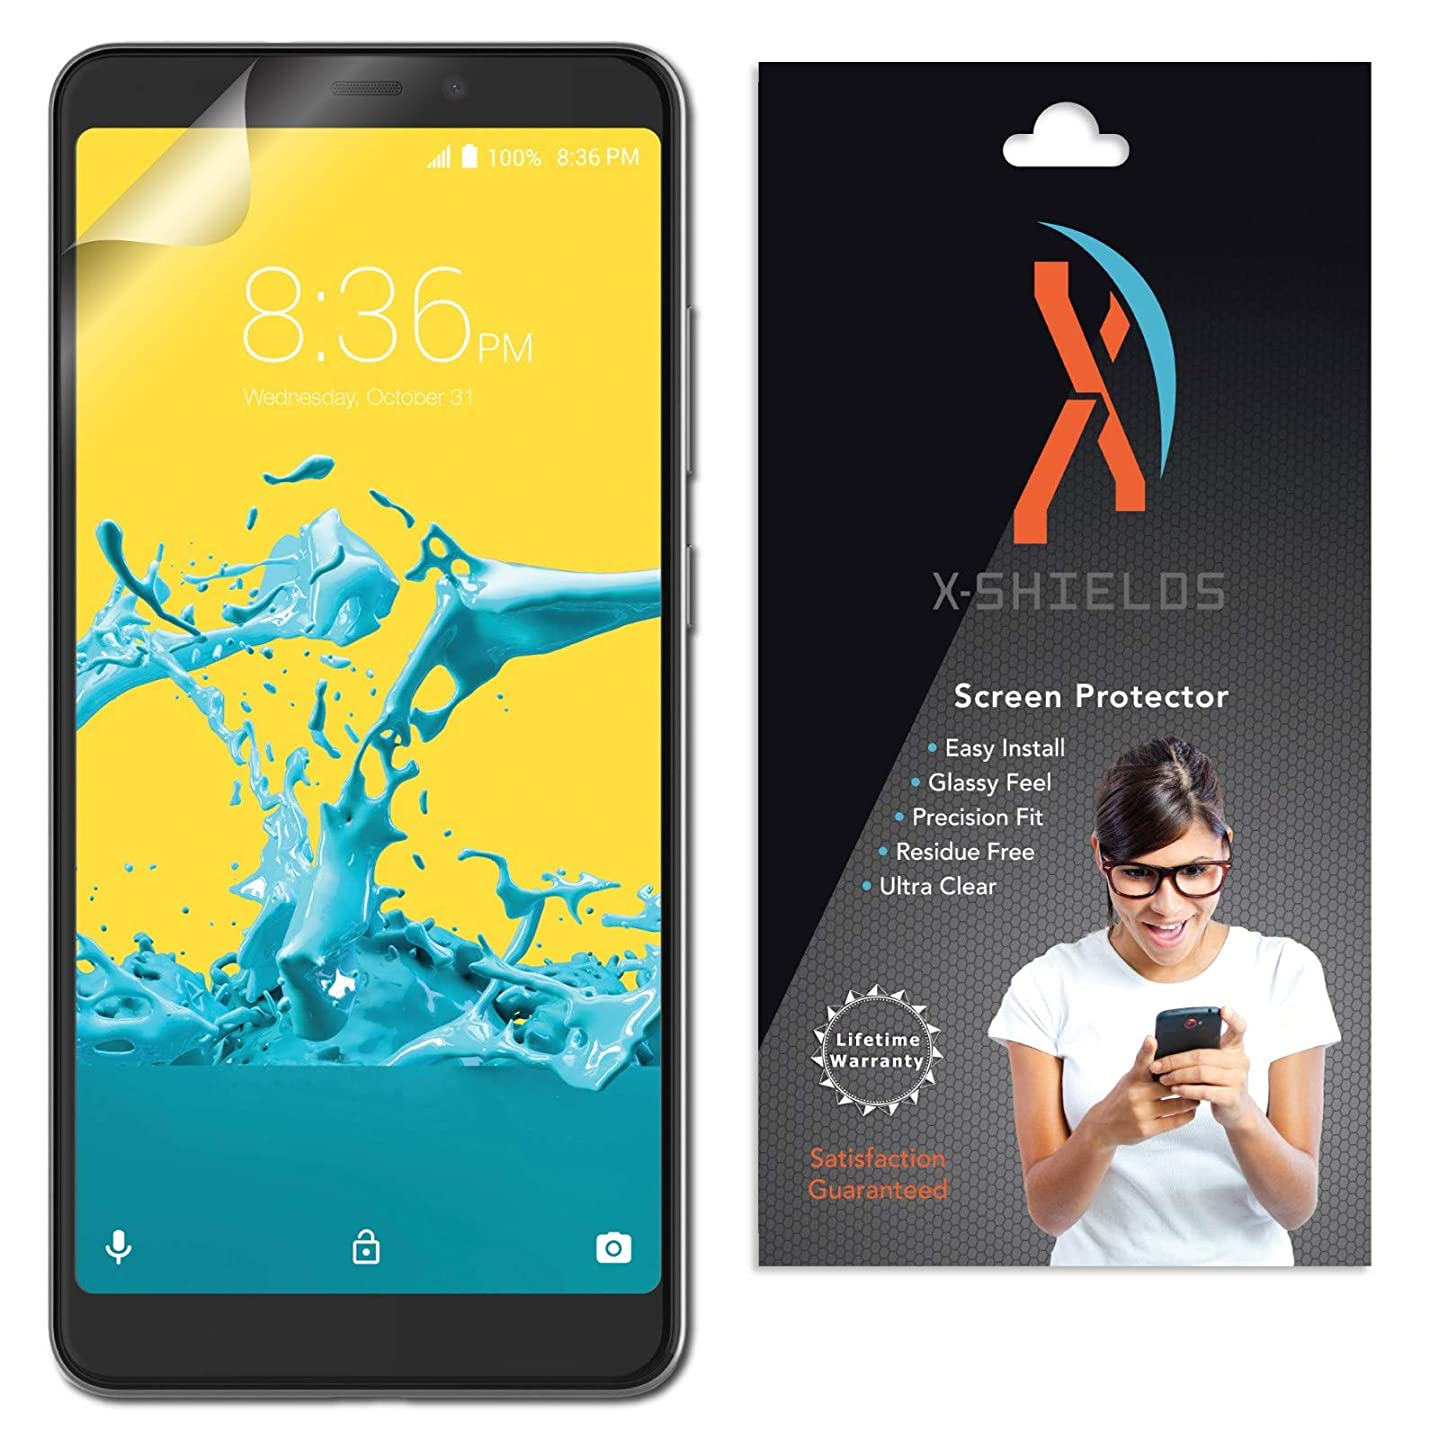 XShields High Definition (HD+) Screen Protectors for ZTE Blade Max 2s (Maximum Clarity) Super Easy Installation [4-Pack], Advanced Touchscreen Accuracy